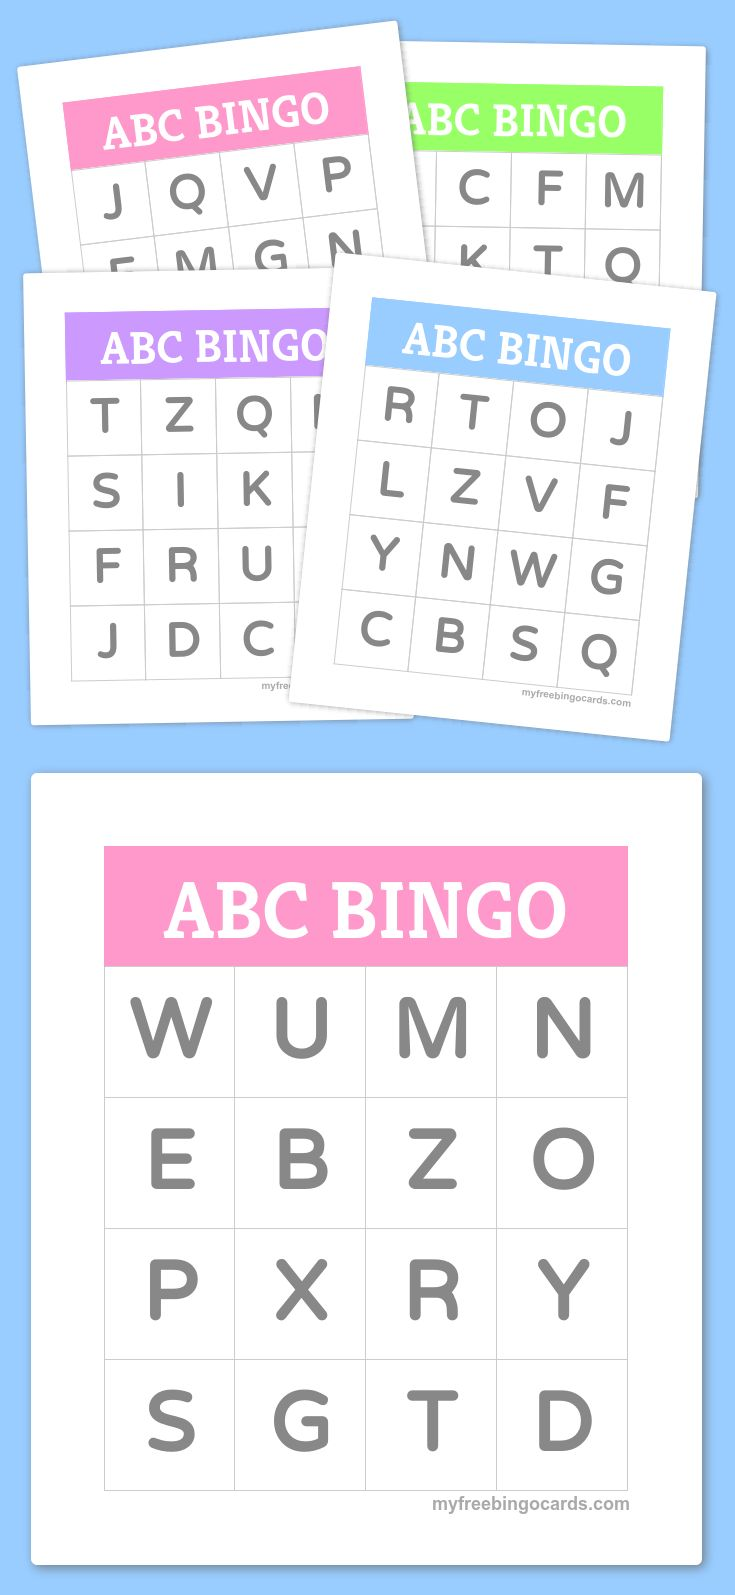 Worksheets Free Printable Letter Recognition Worksheets 73 best preschool images on pinterest speech language therapy day free printable bingo cards